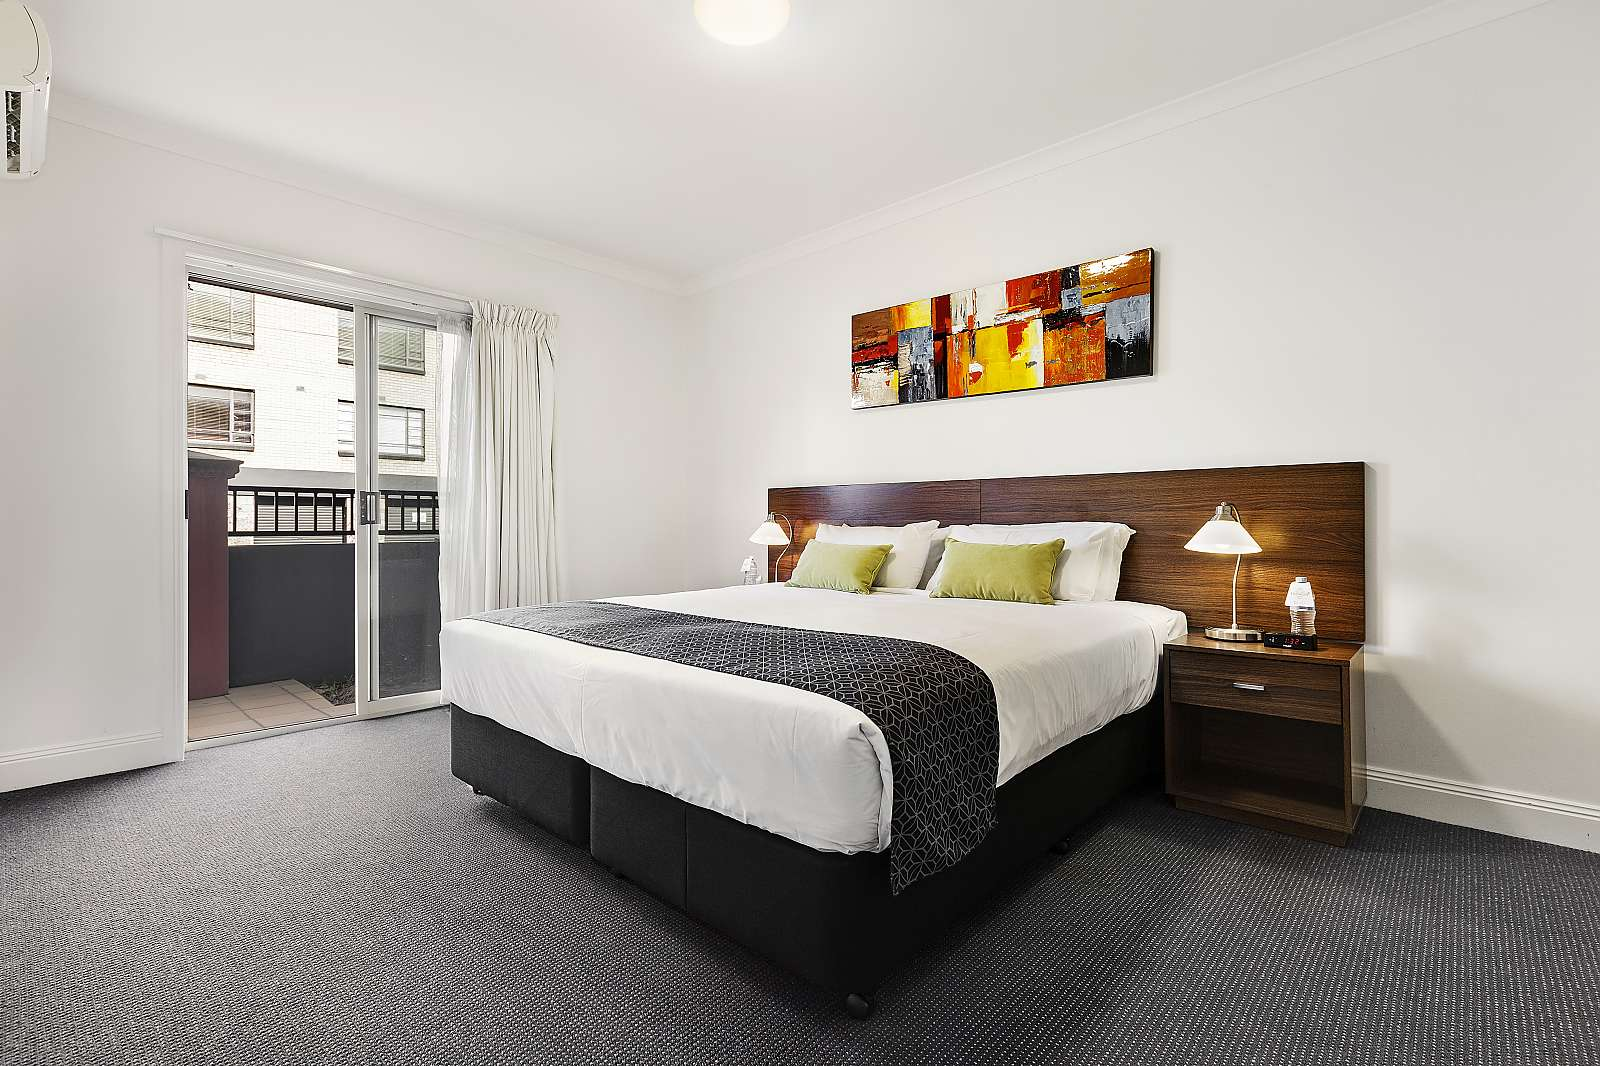 198-Quest-Acquisitions-No-2-Pty-Ltd-accomodation-St-Kilda